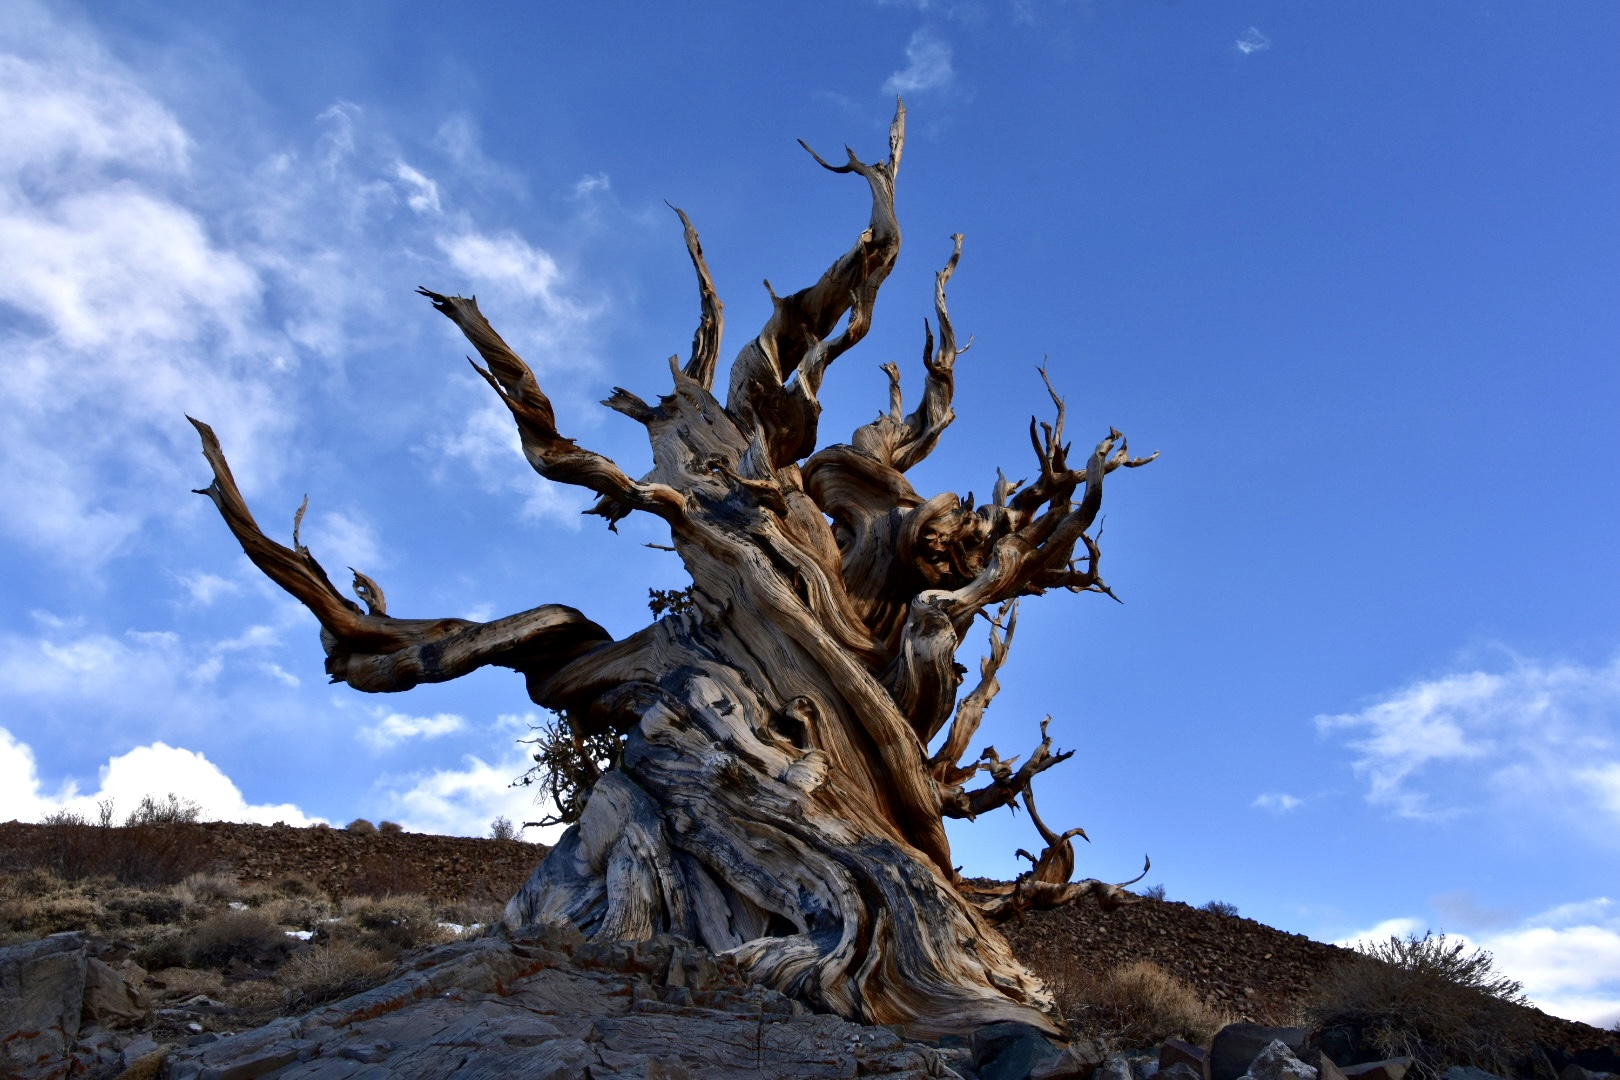 Road: Petroglyphs, Volcanic Tablelands and Ancient Bristlecone Pines